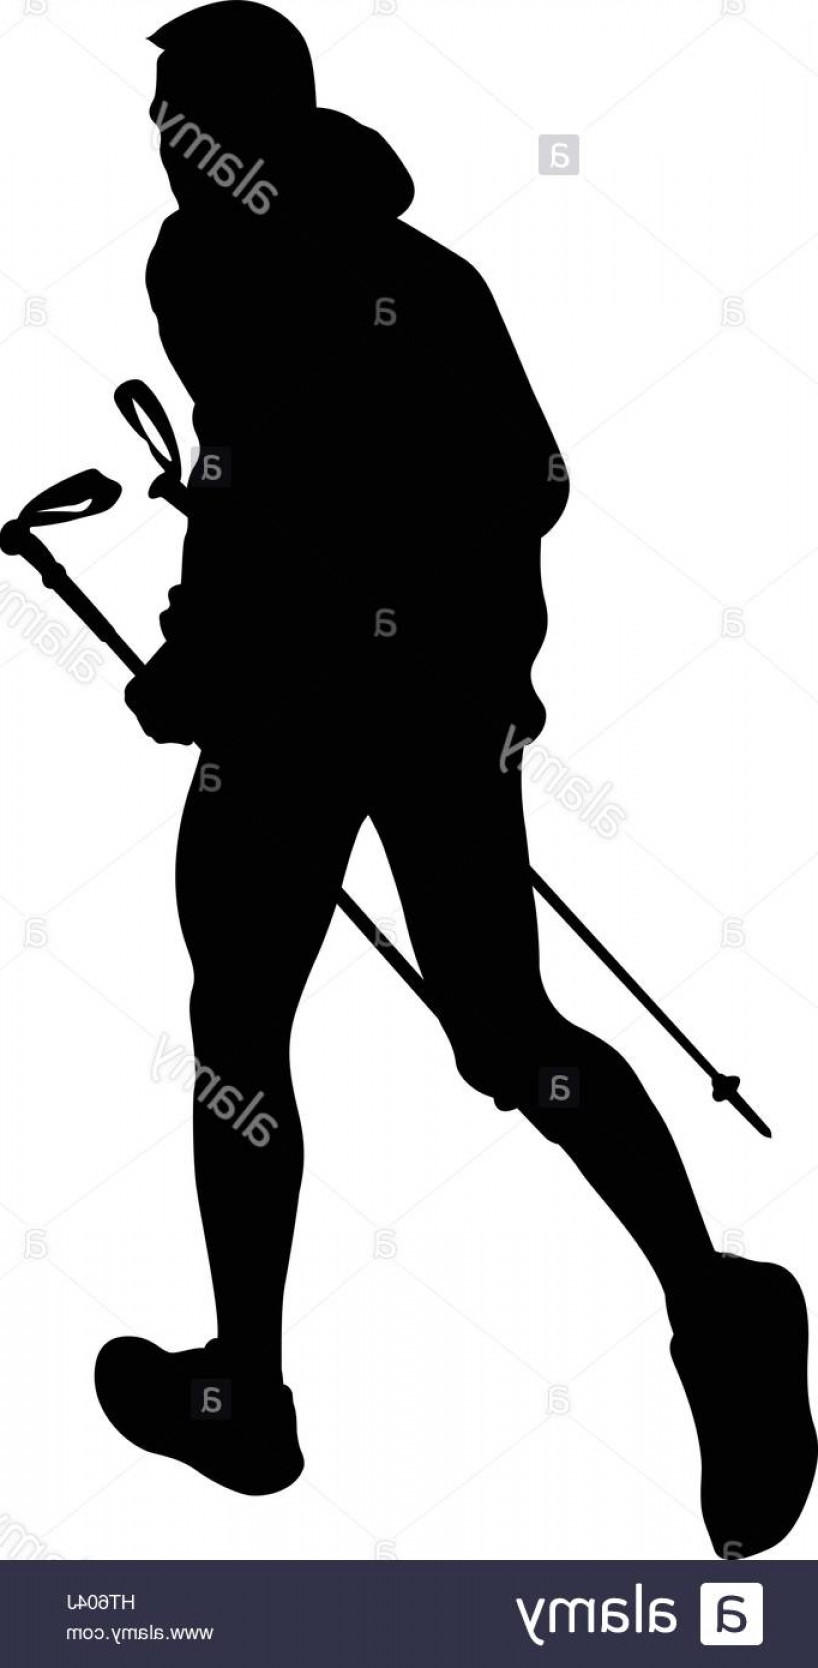 Mountain Trail Vector: Stock Photo Male Runner With Trekking Poles Running Mountain Trail Black Silhouette